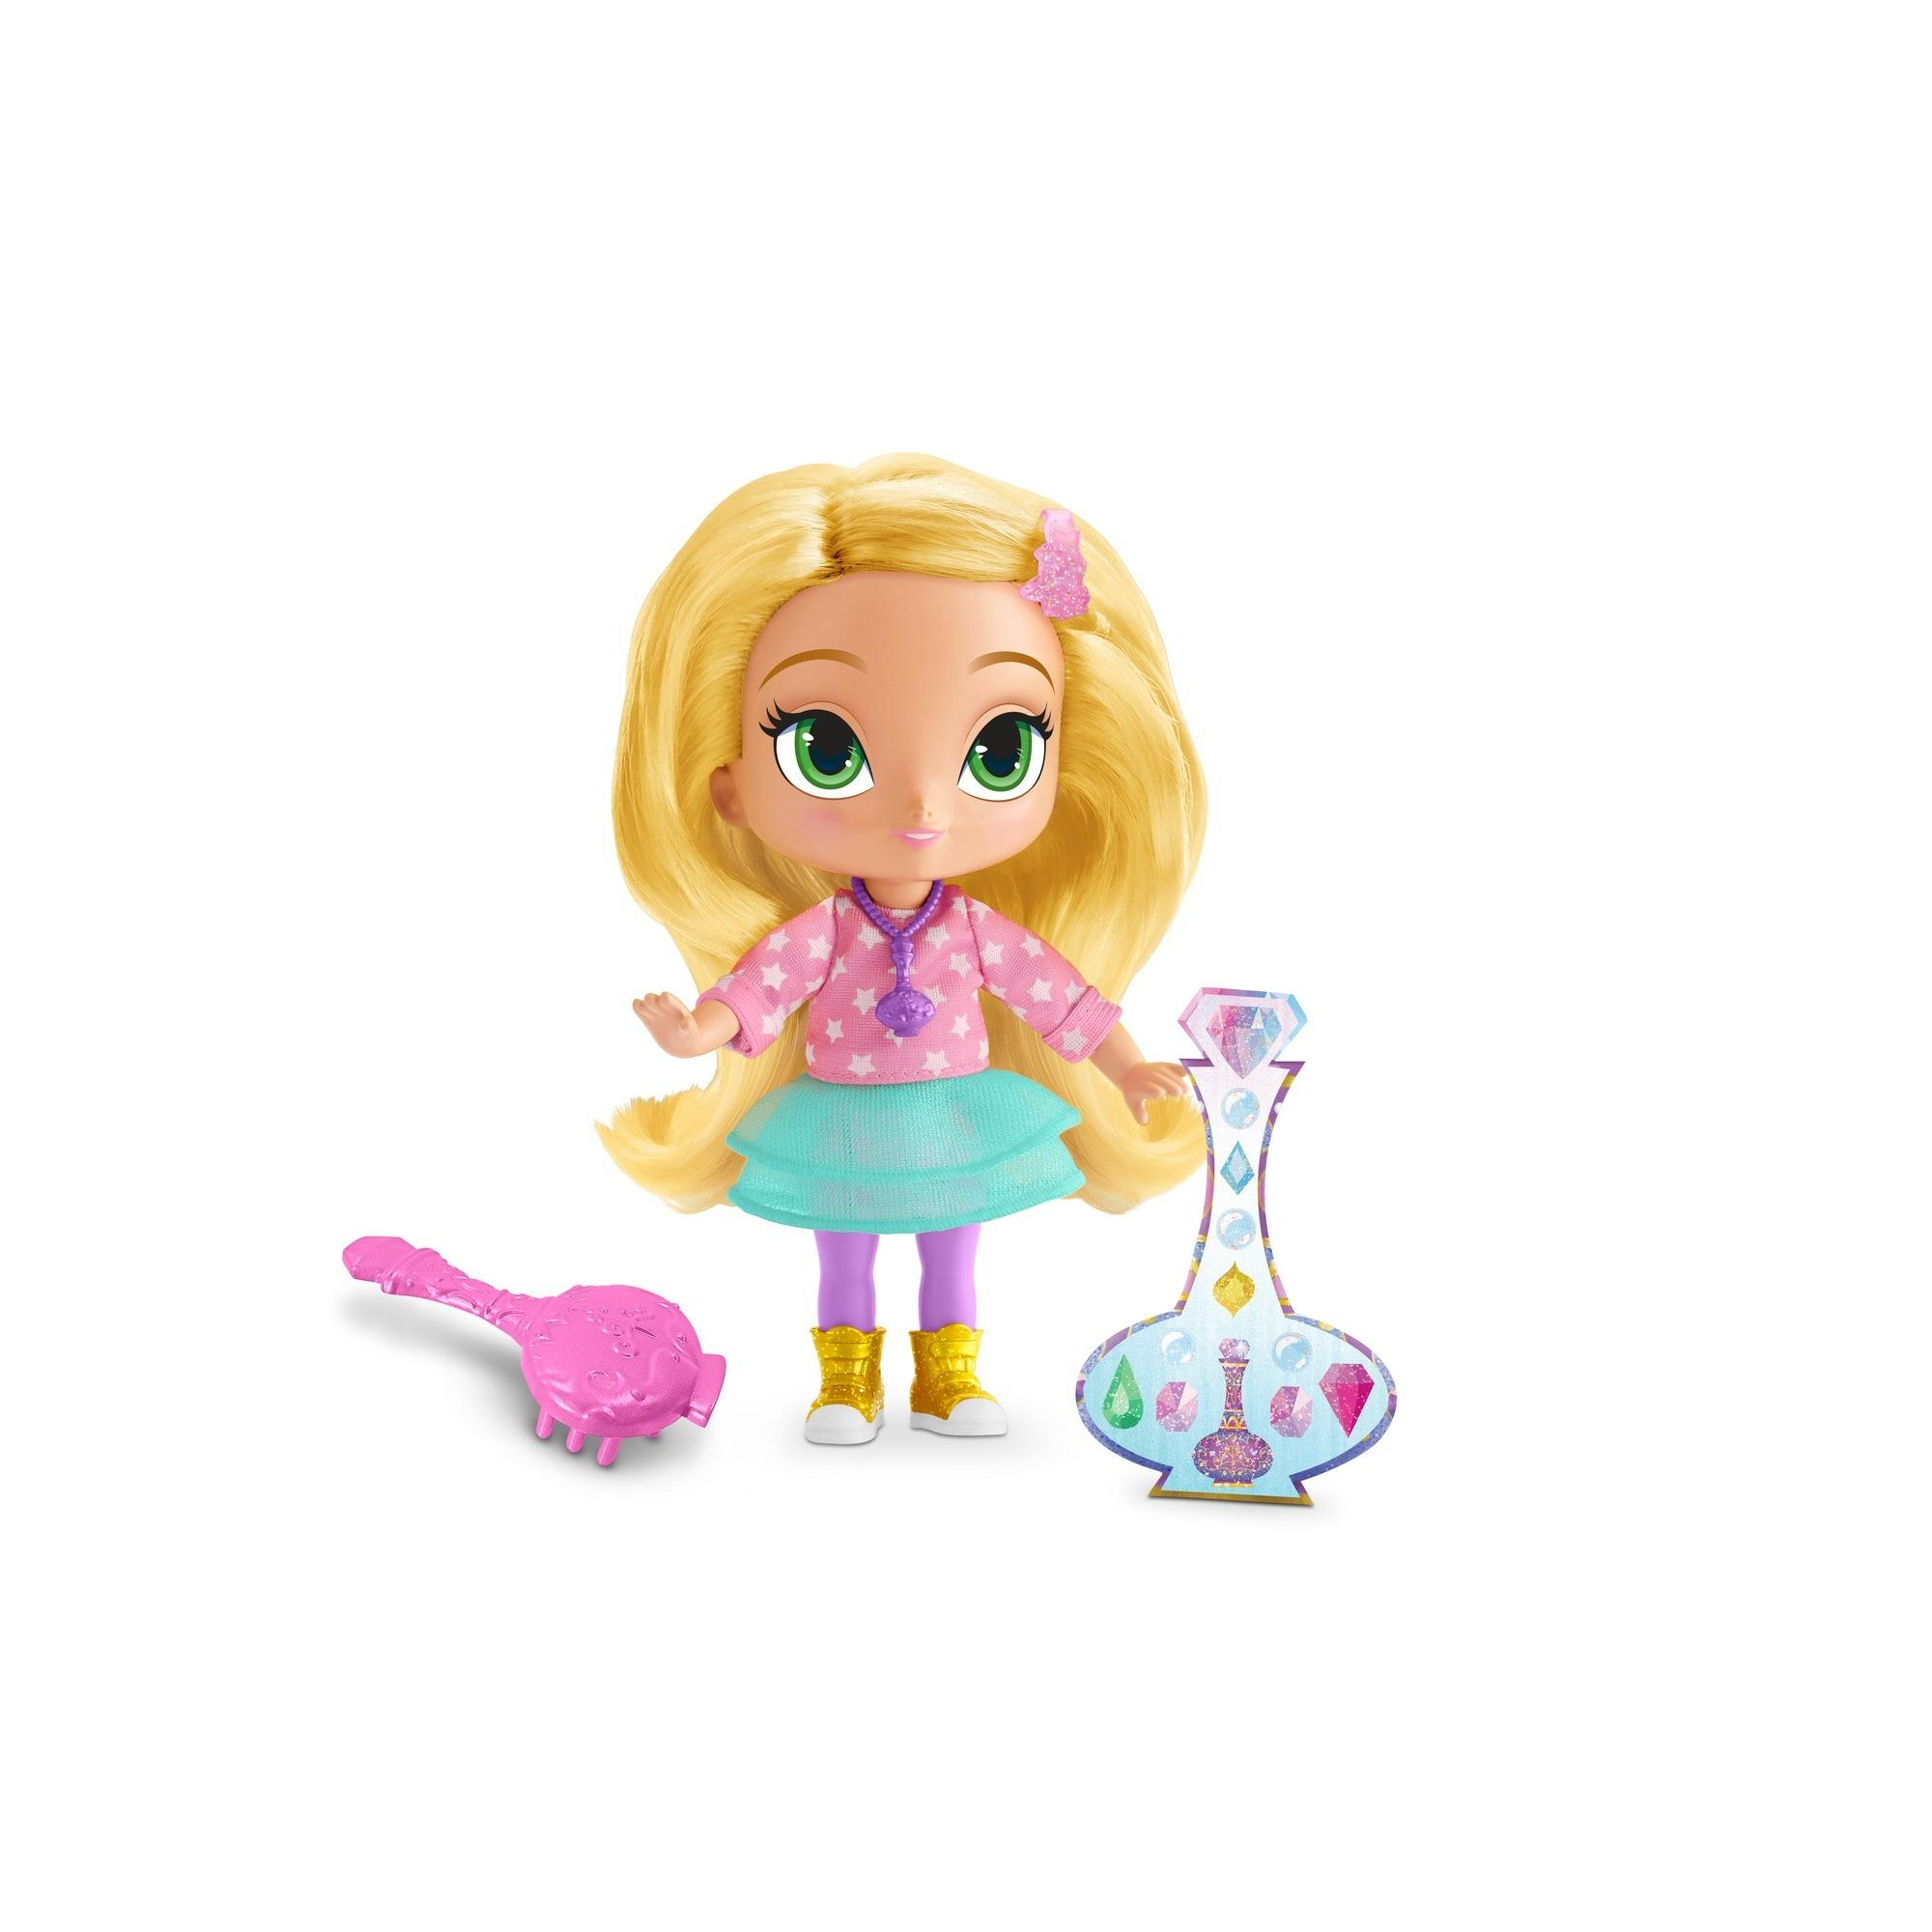 Shimmer and Shine 6-inch Leah Doll by FISHER PRICE